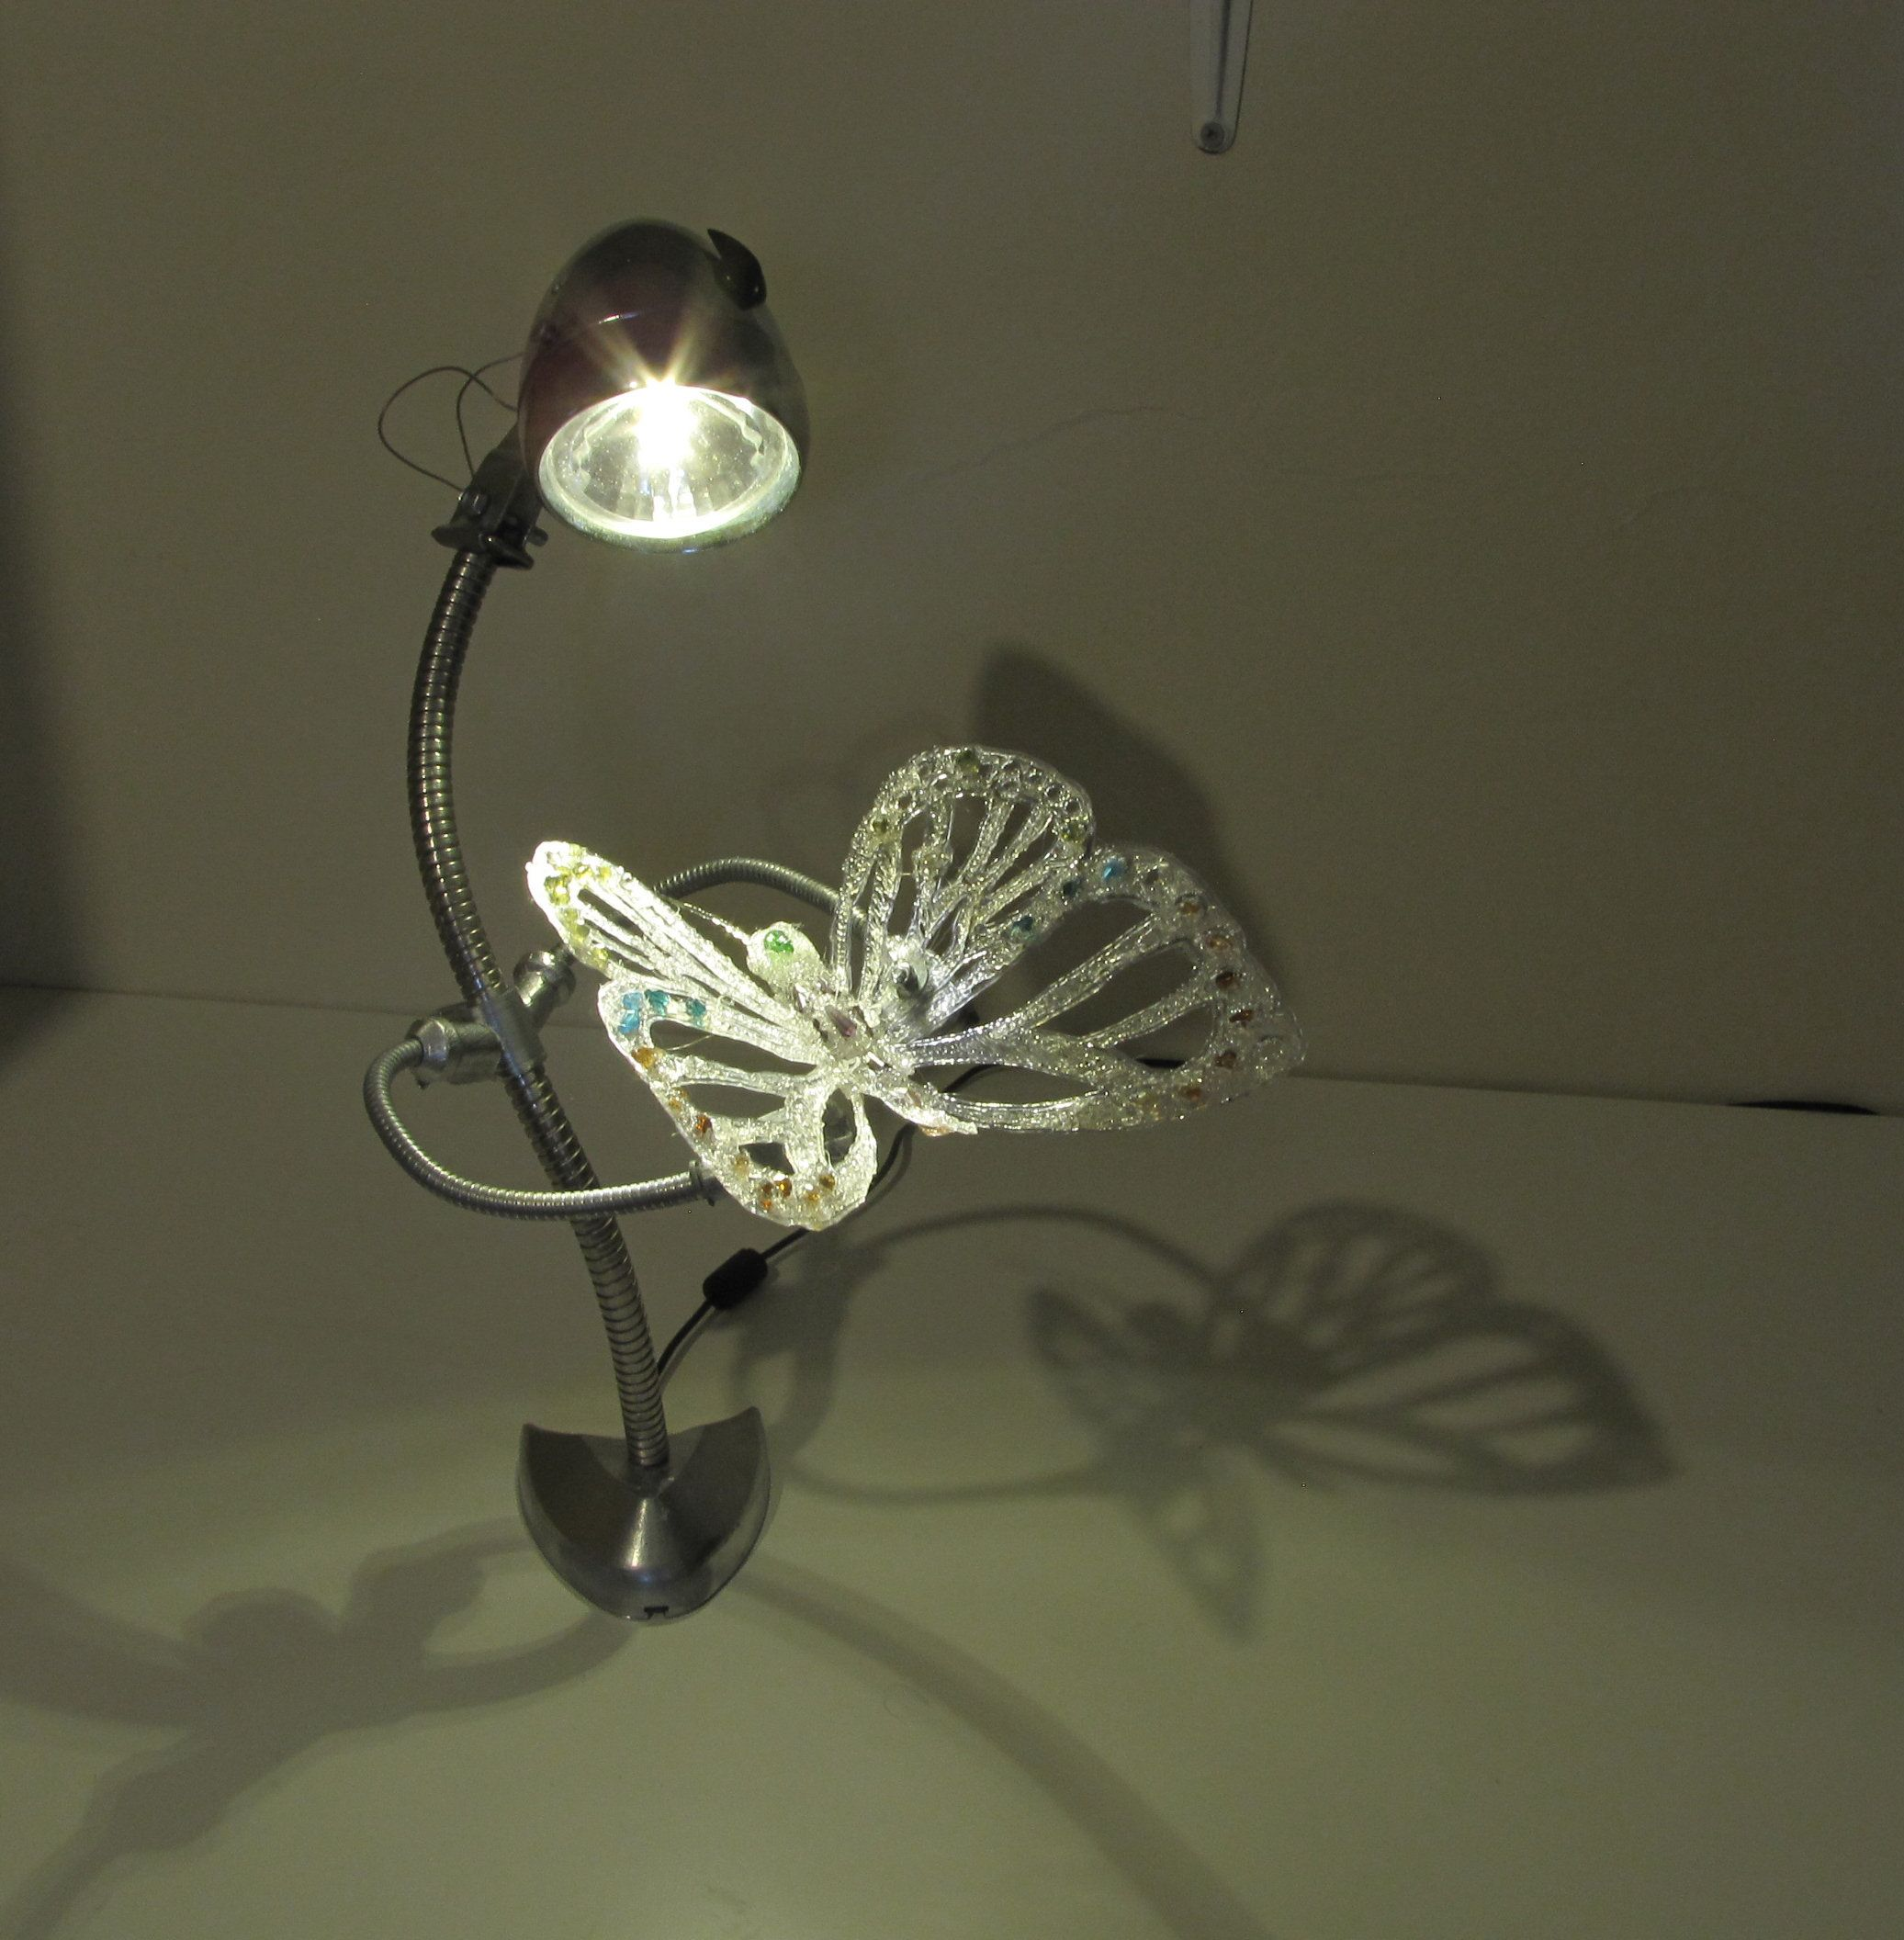 Artistic Lamp Yellow Butterfly In 2020 Retro Bicycle Retro Bicycle